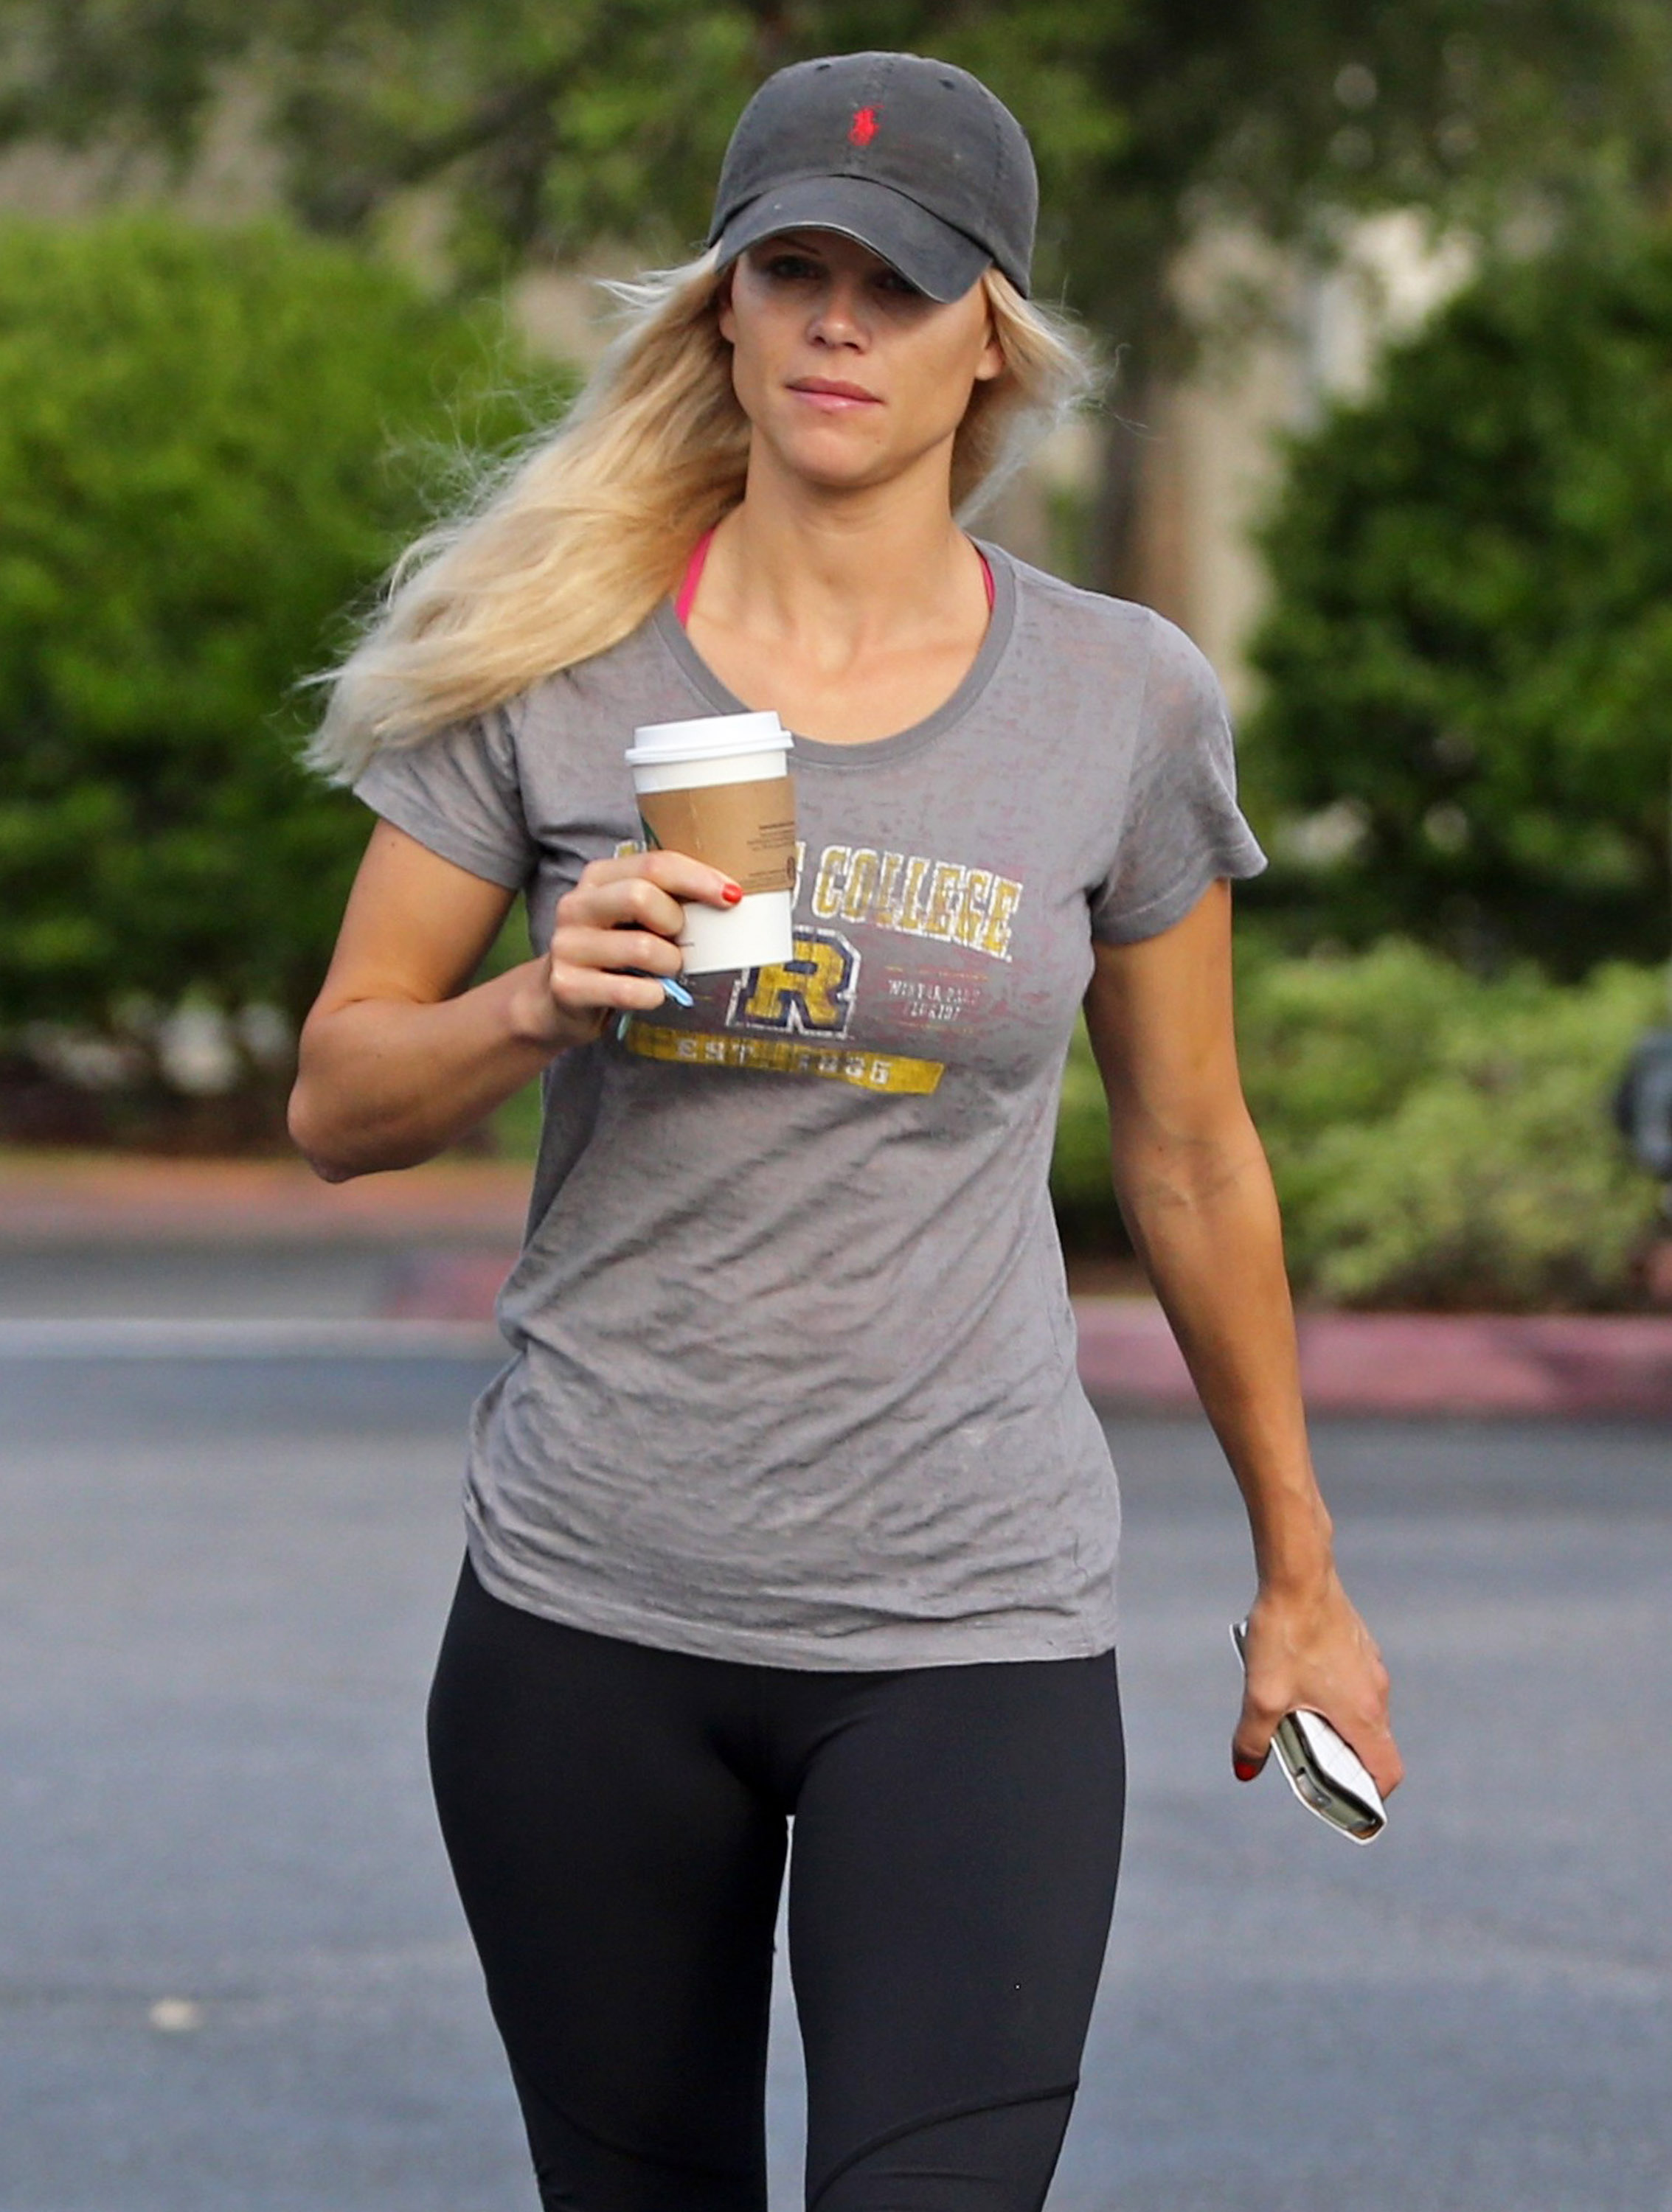 Hilary swank hairstyles for 2017 celebrity hairstyles by - Elin Nordegren Pictures In Yoga Pants 10 Full Size